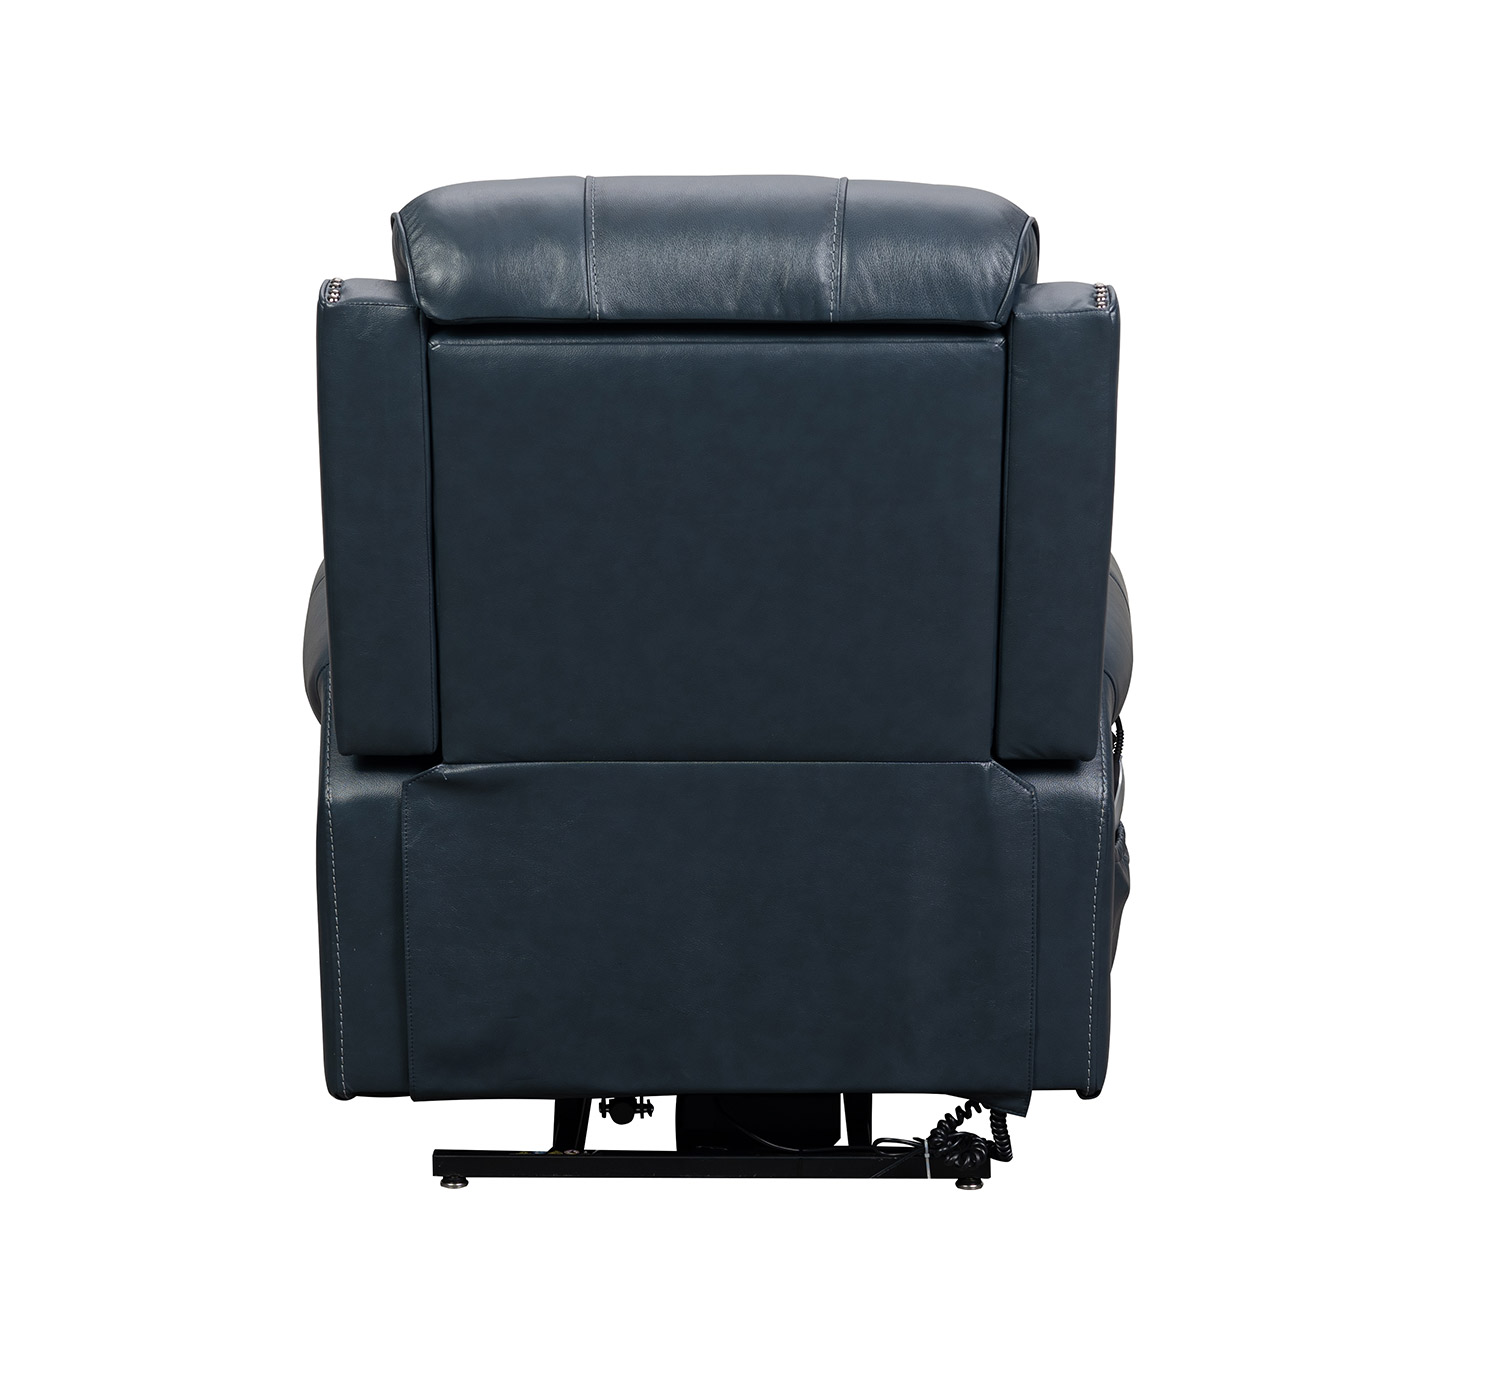 Barcalounger Langston Lift Chair Recliner with Power Head Rest and Lumbar - Venzia Blue/Leather Match